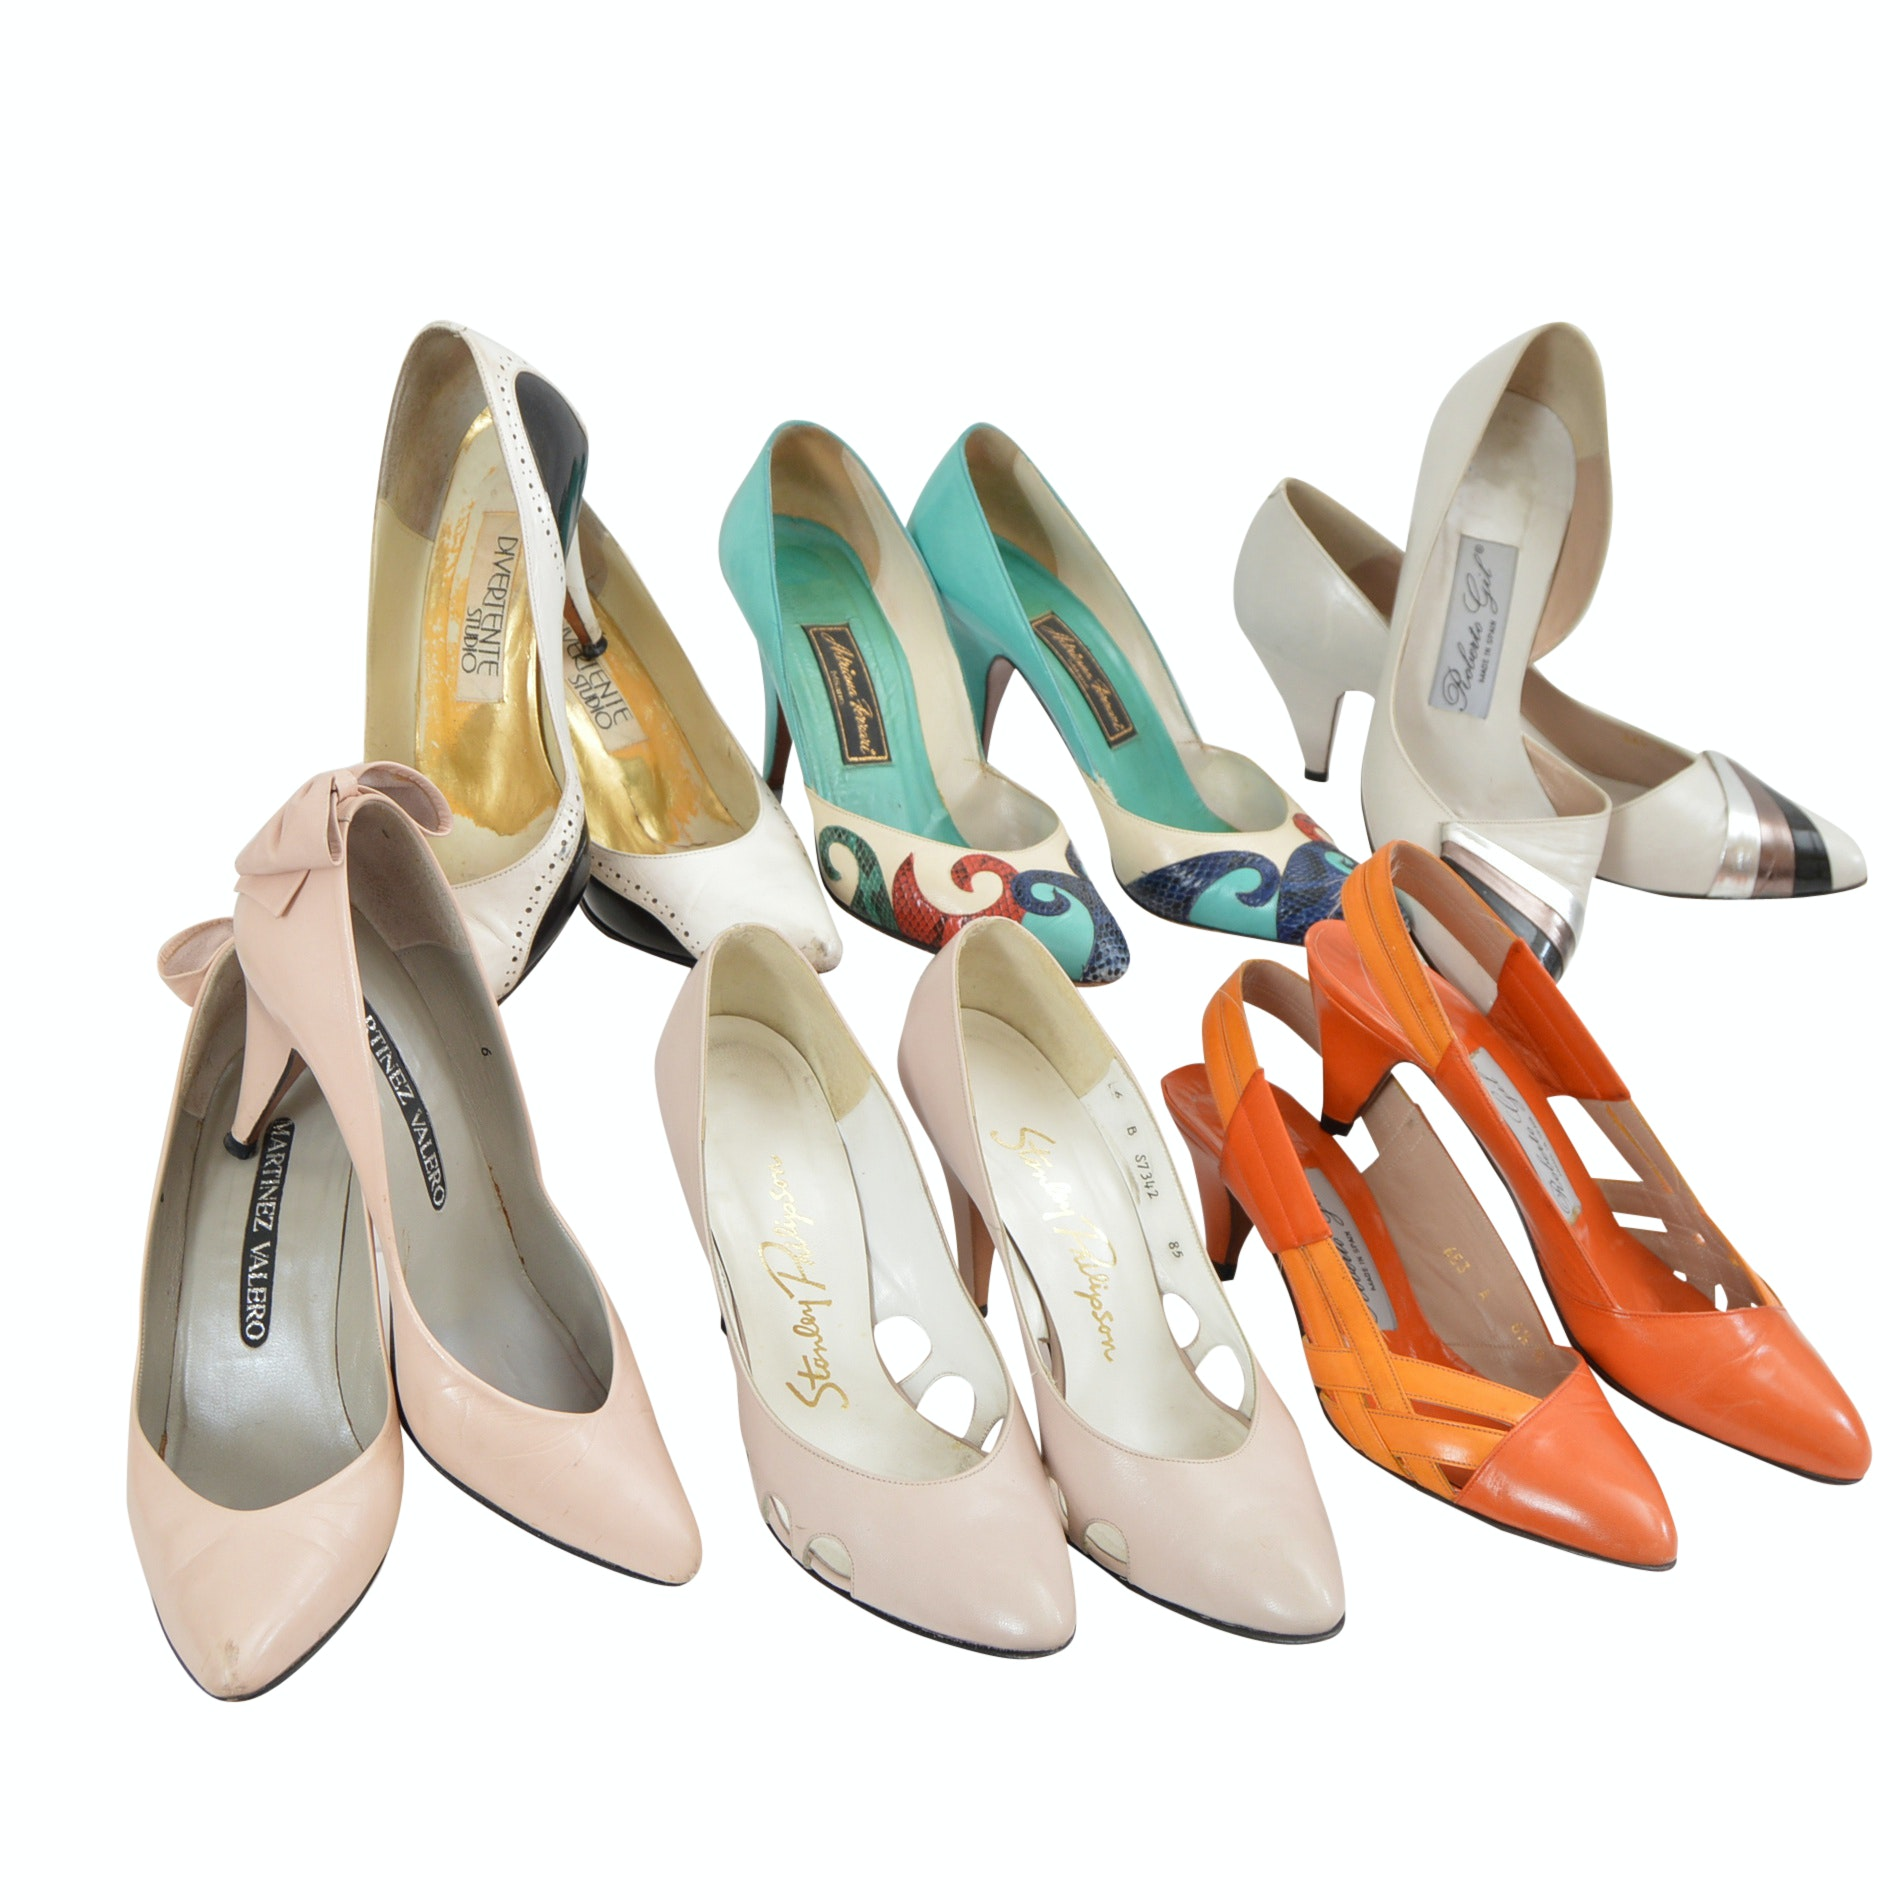 Women's 1960s Spanish-Made Leather High Heel Shoes Including Martinez Valero